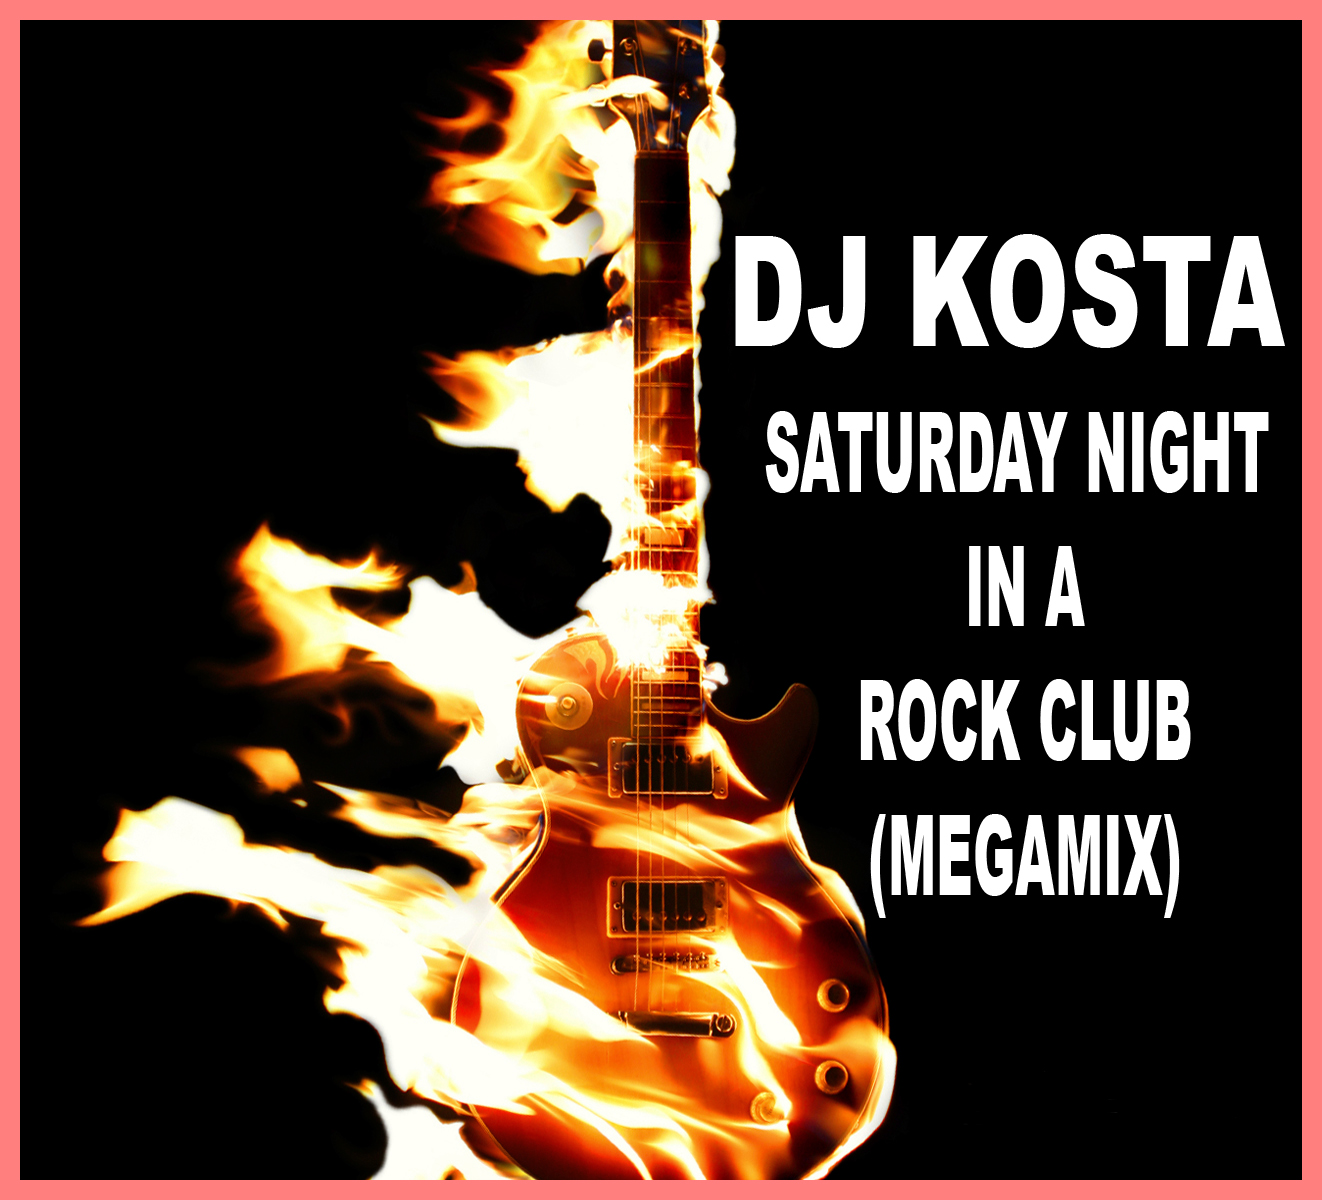 DJ KOSTA - SATURDAY NIGHT IN A ROCK CLUB! ( 2010 MEGAMIX )